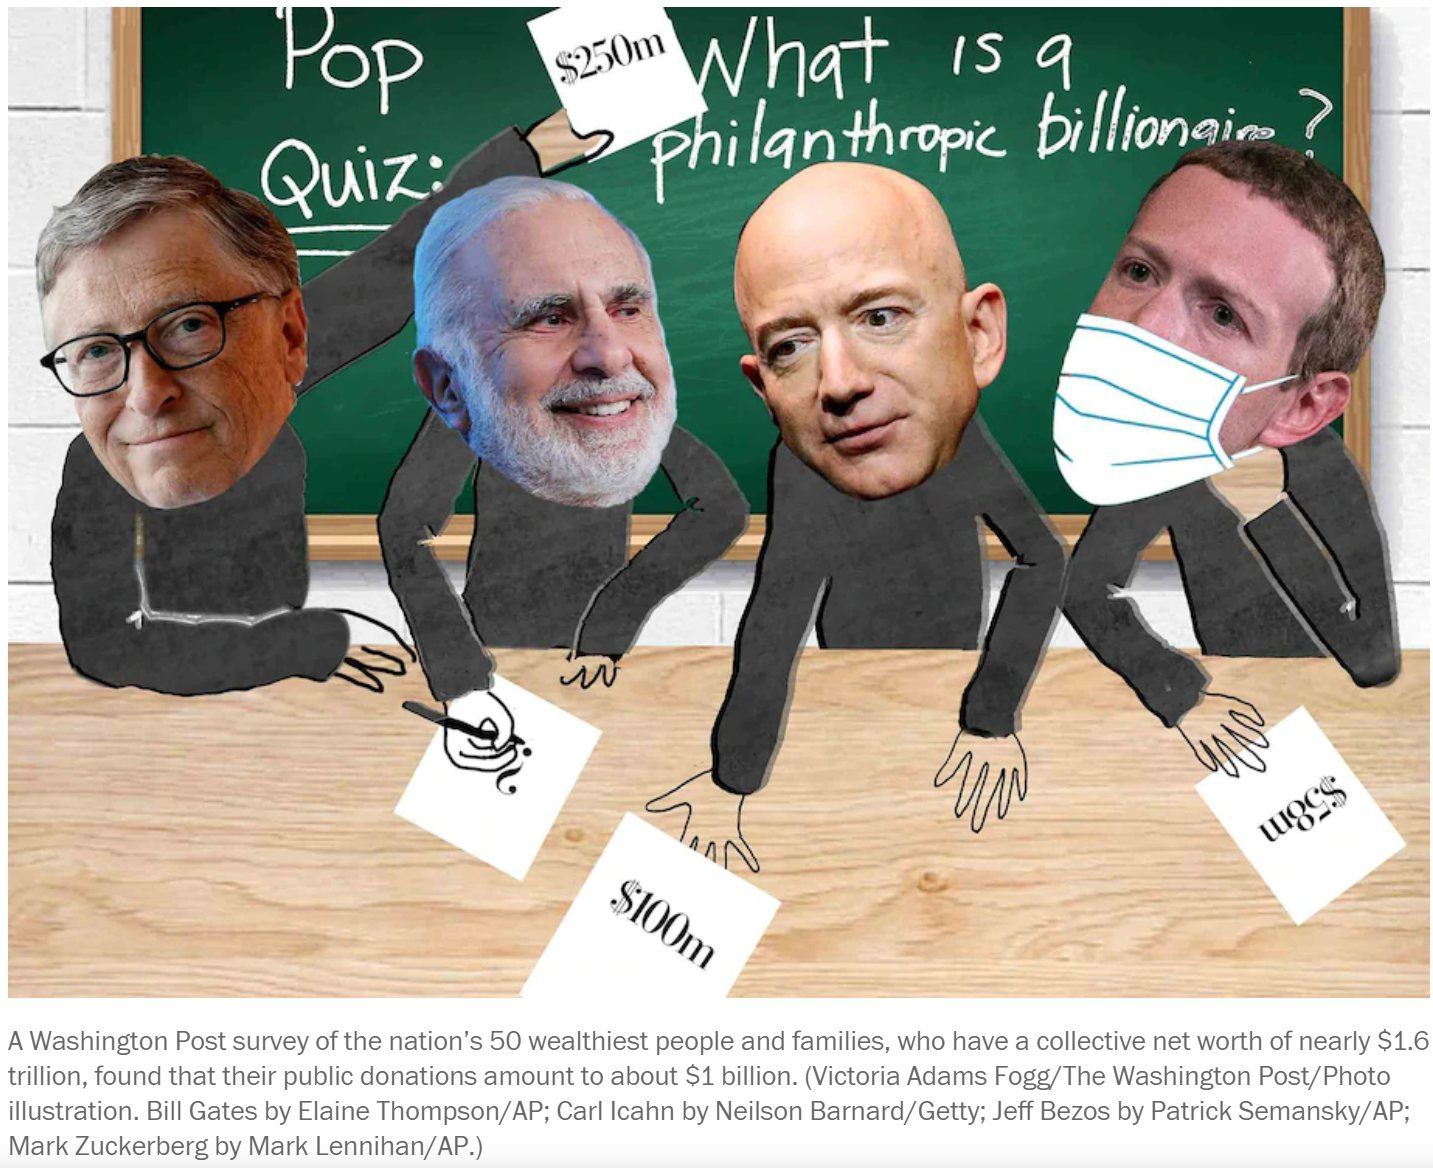 The pandemic is testing the generosity of billionaires, according to a Washington Post survey of the 50 richest Americans